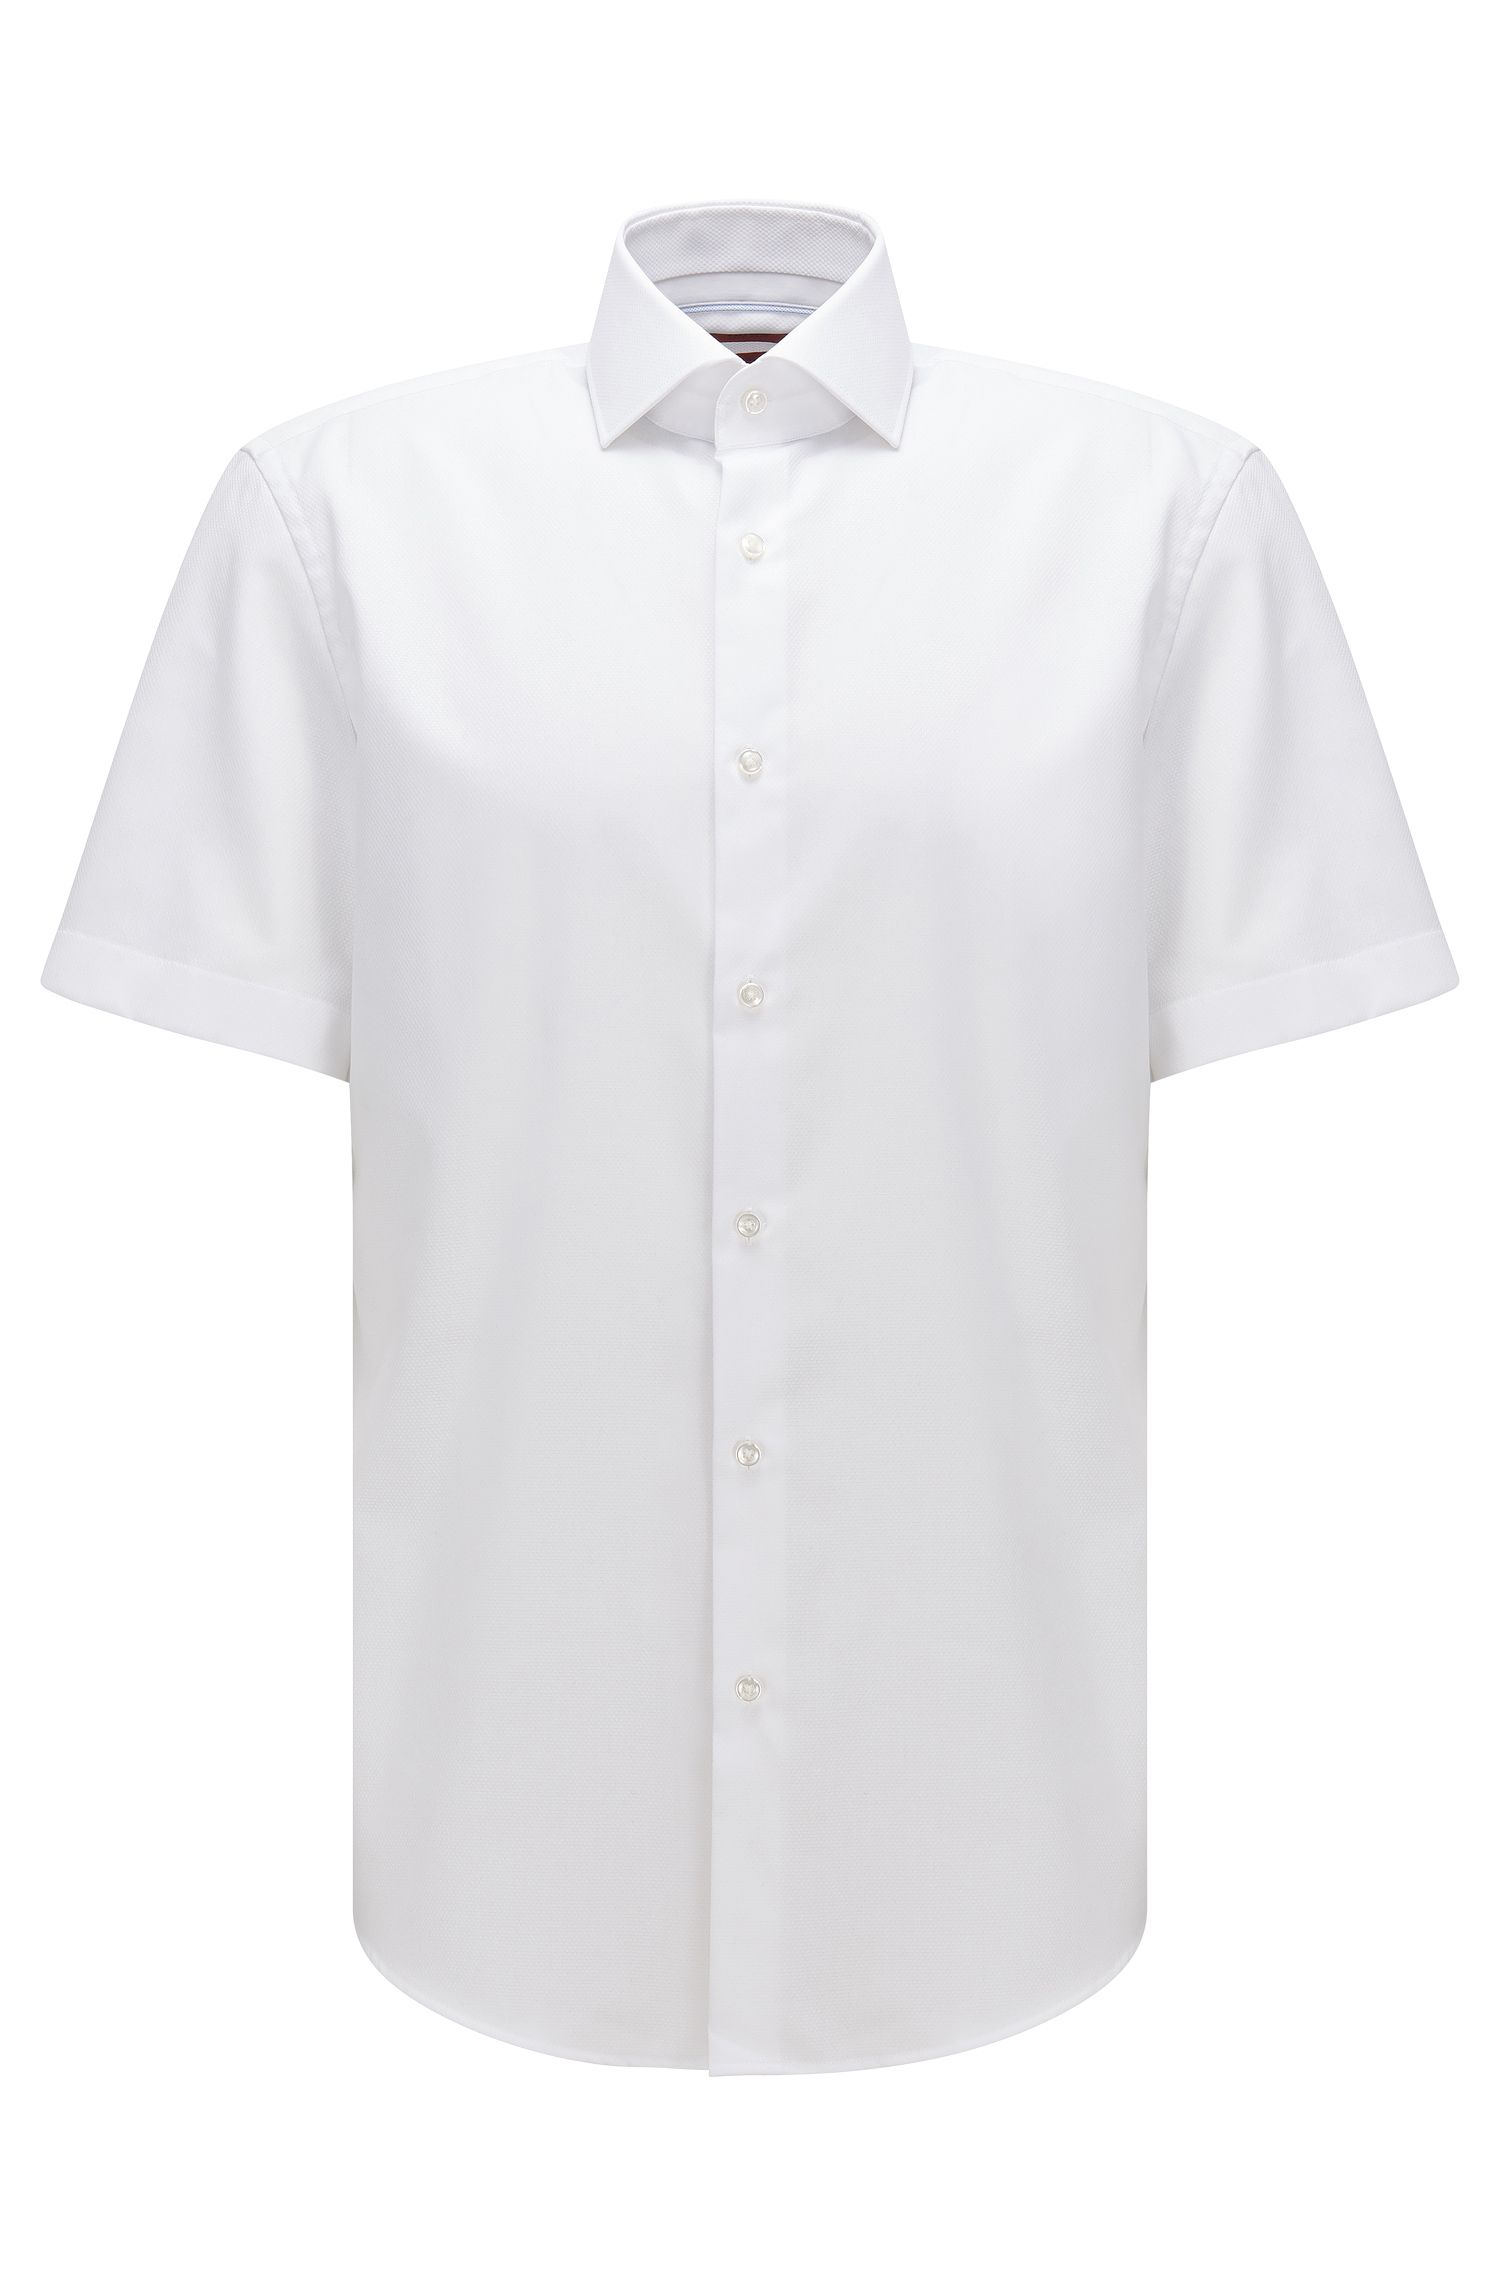 Regular-fit short-sleeved cotton shirt with plain check structure